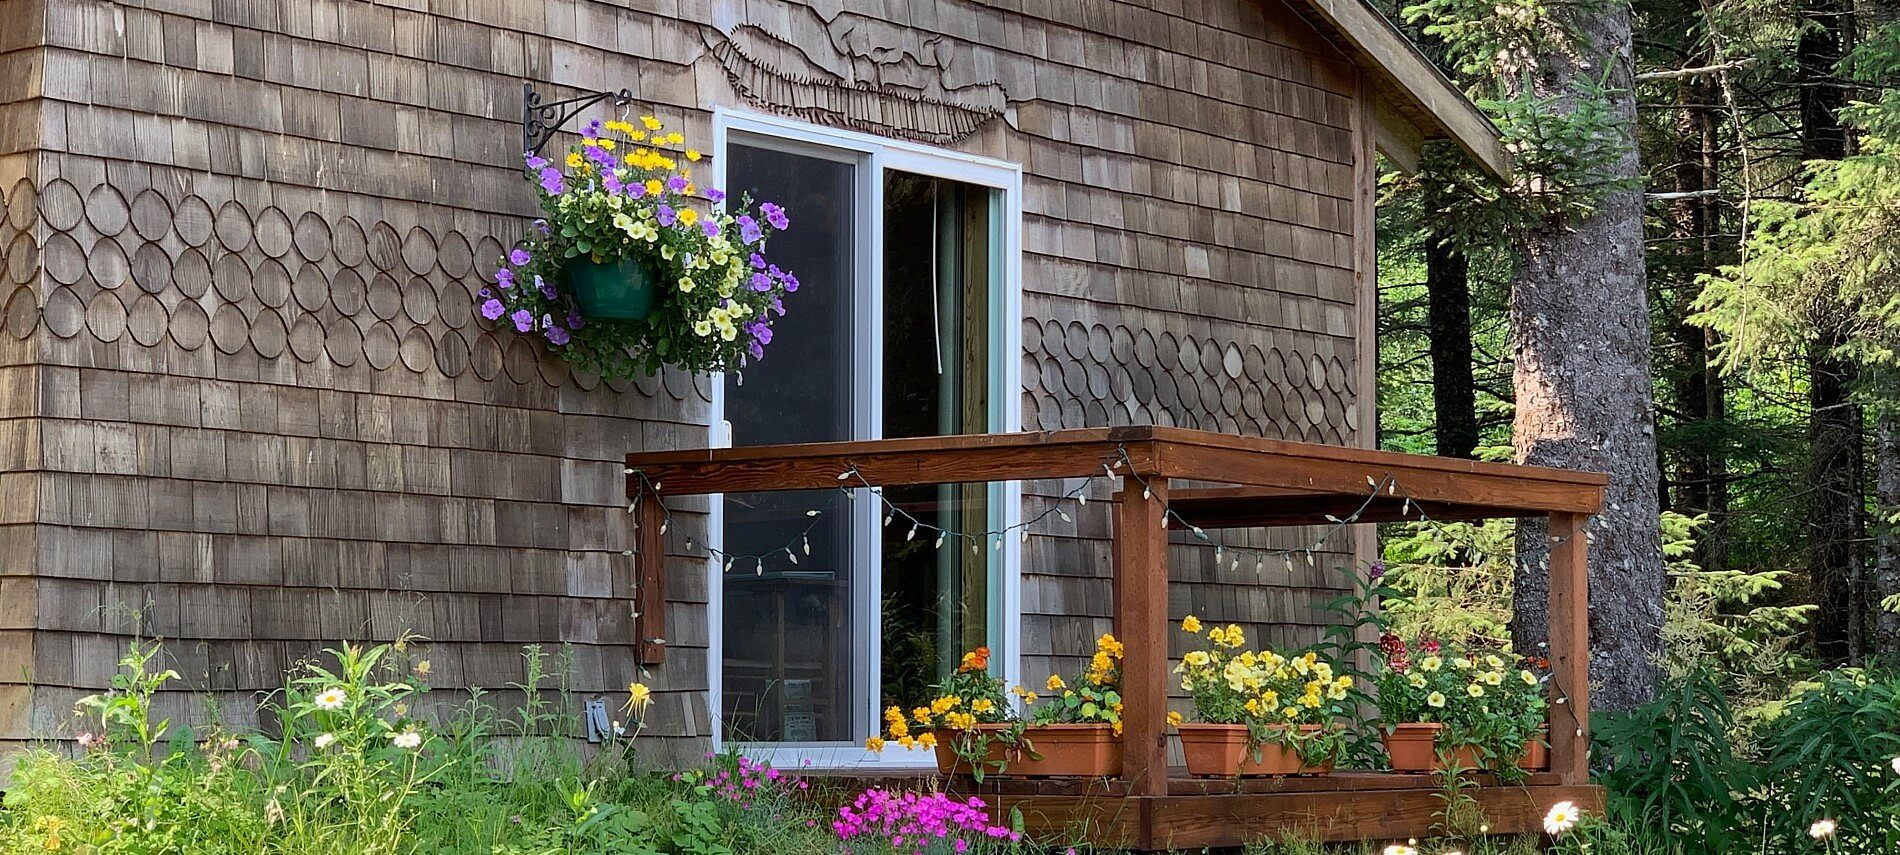 Brown cabin with decorative shingles and side porch with colorful flowers and hanging white lights